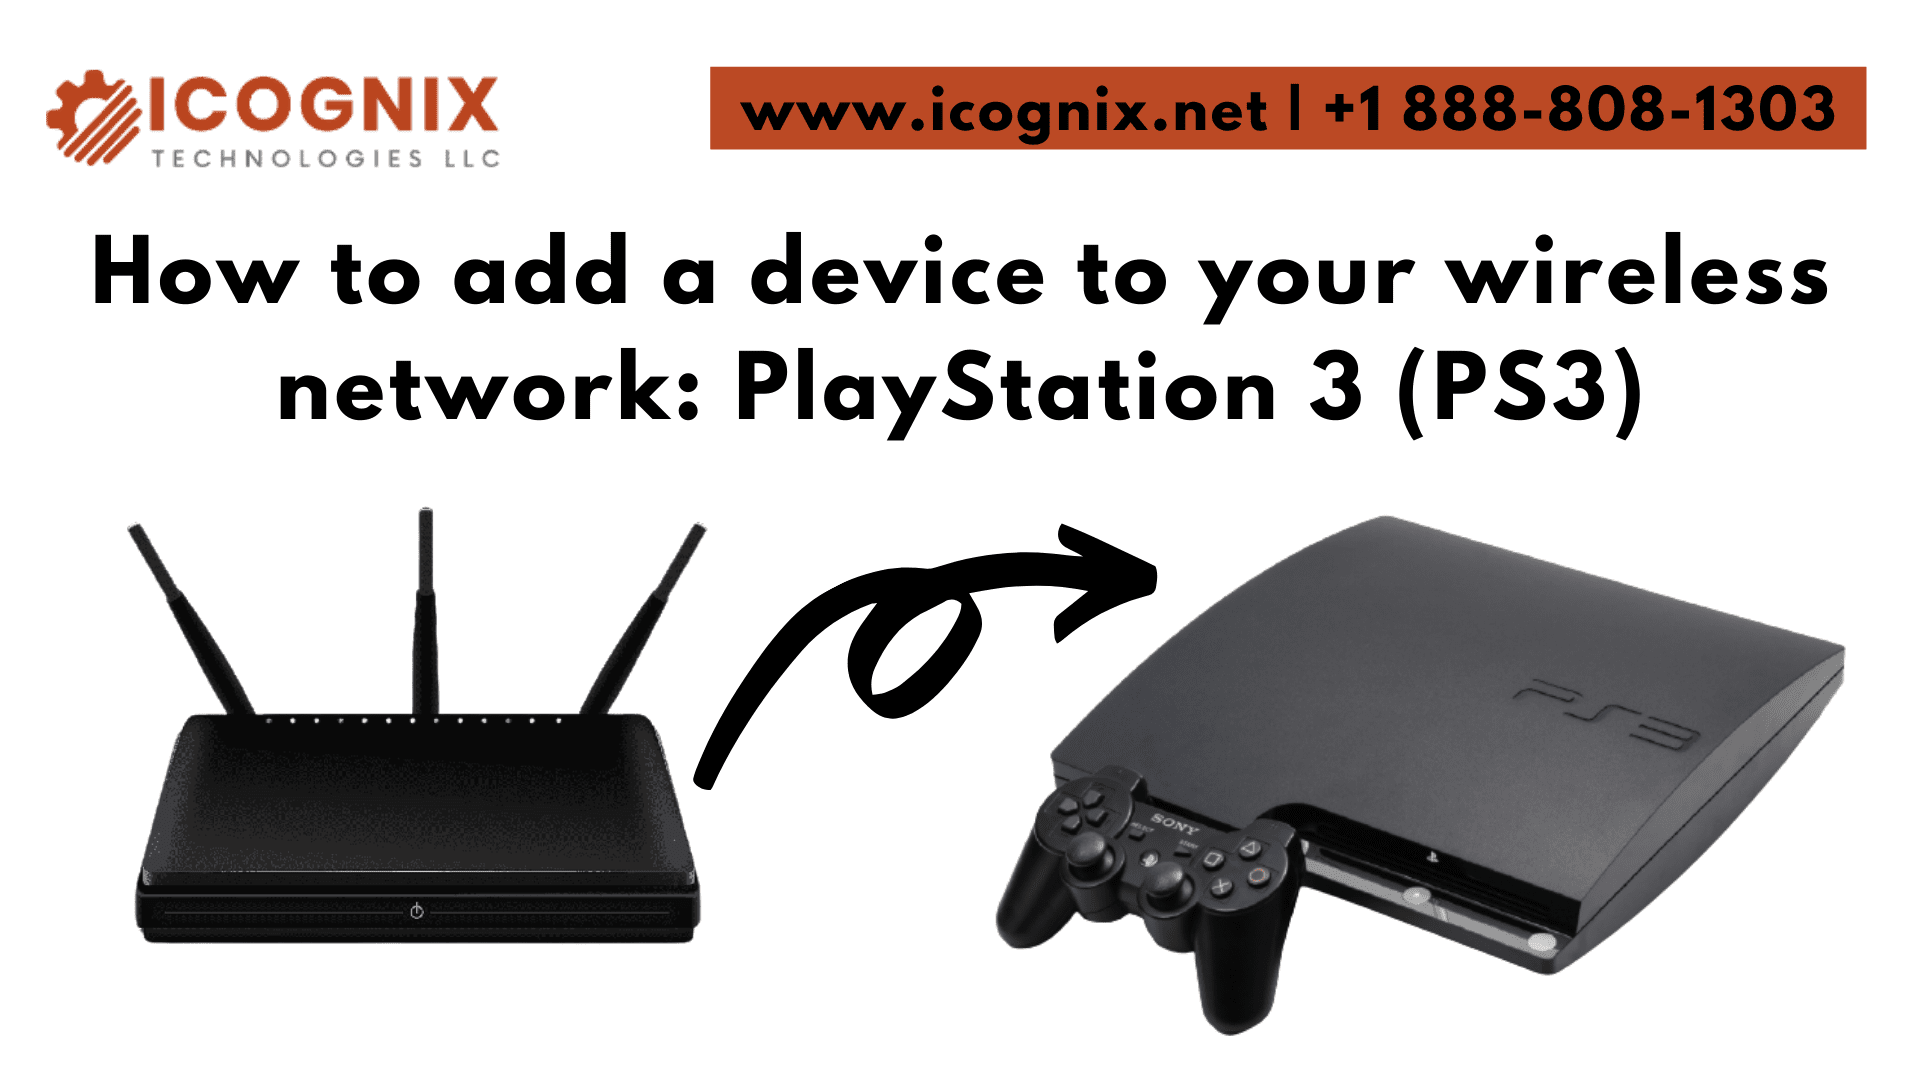 How to add a device to your wireless network PlayStation 3 (PS3)